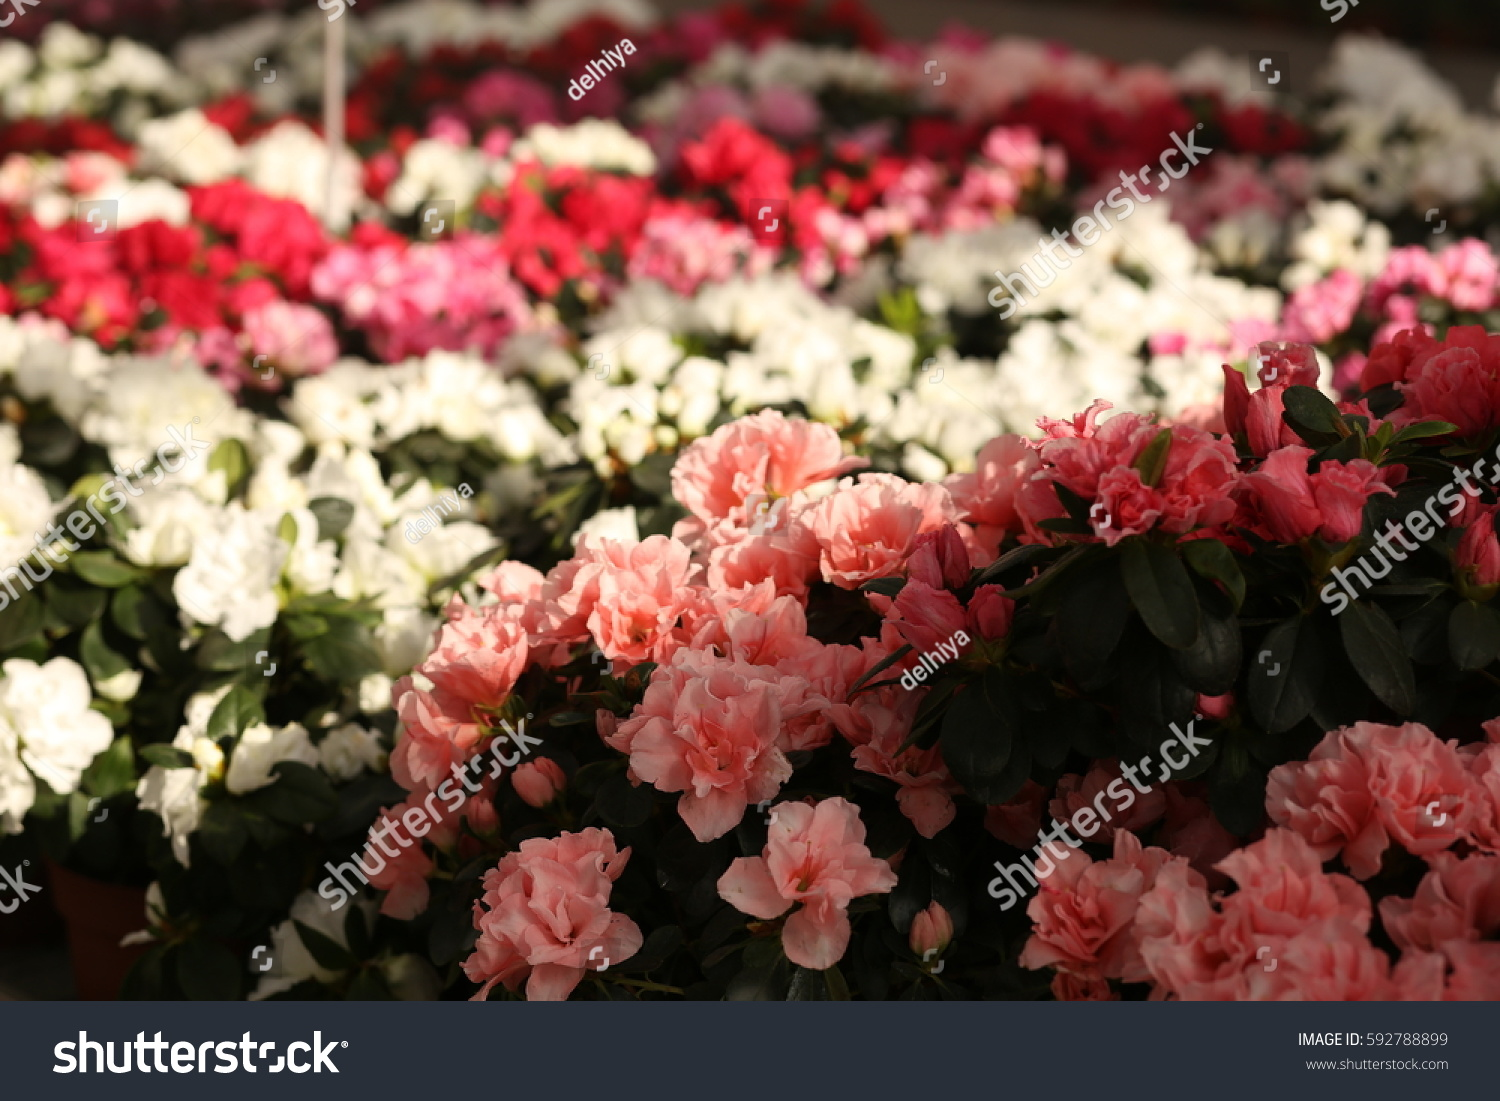 Beautiful Pictures Plants Flowers Stock Photo 592788899 Shutterstock